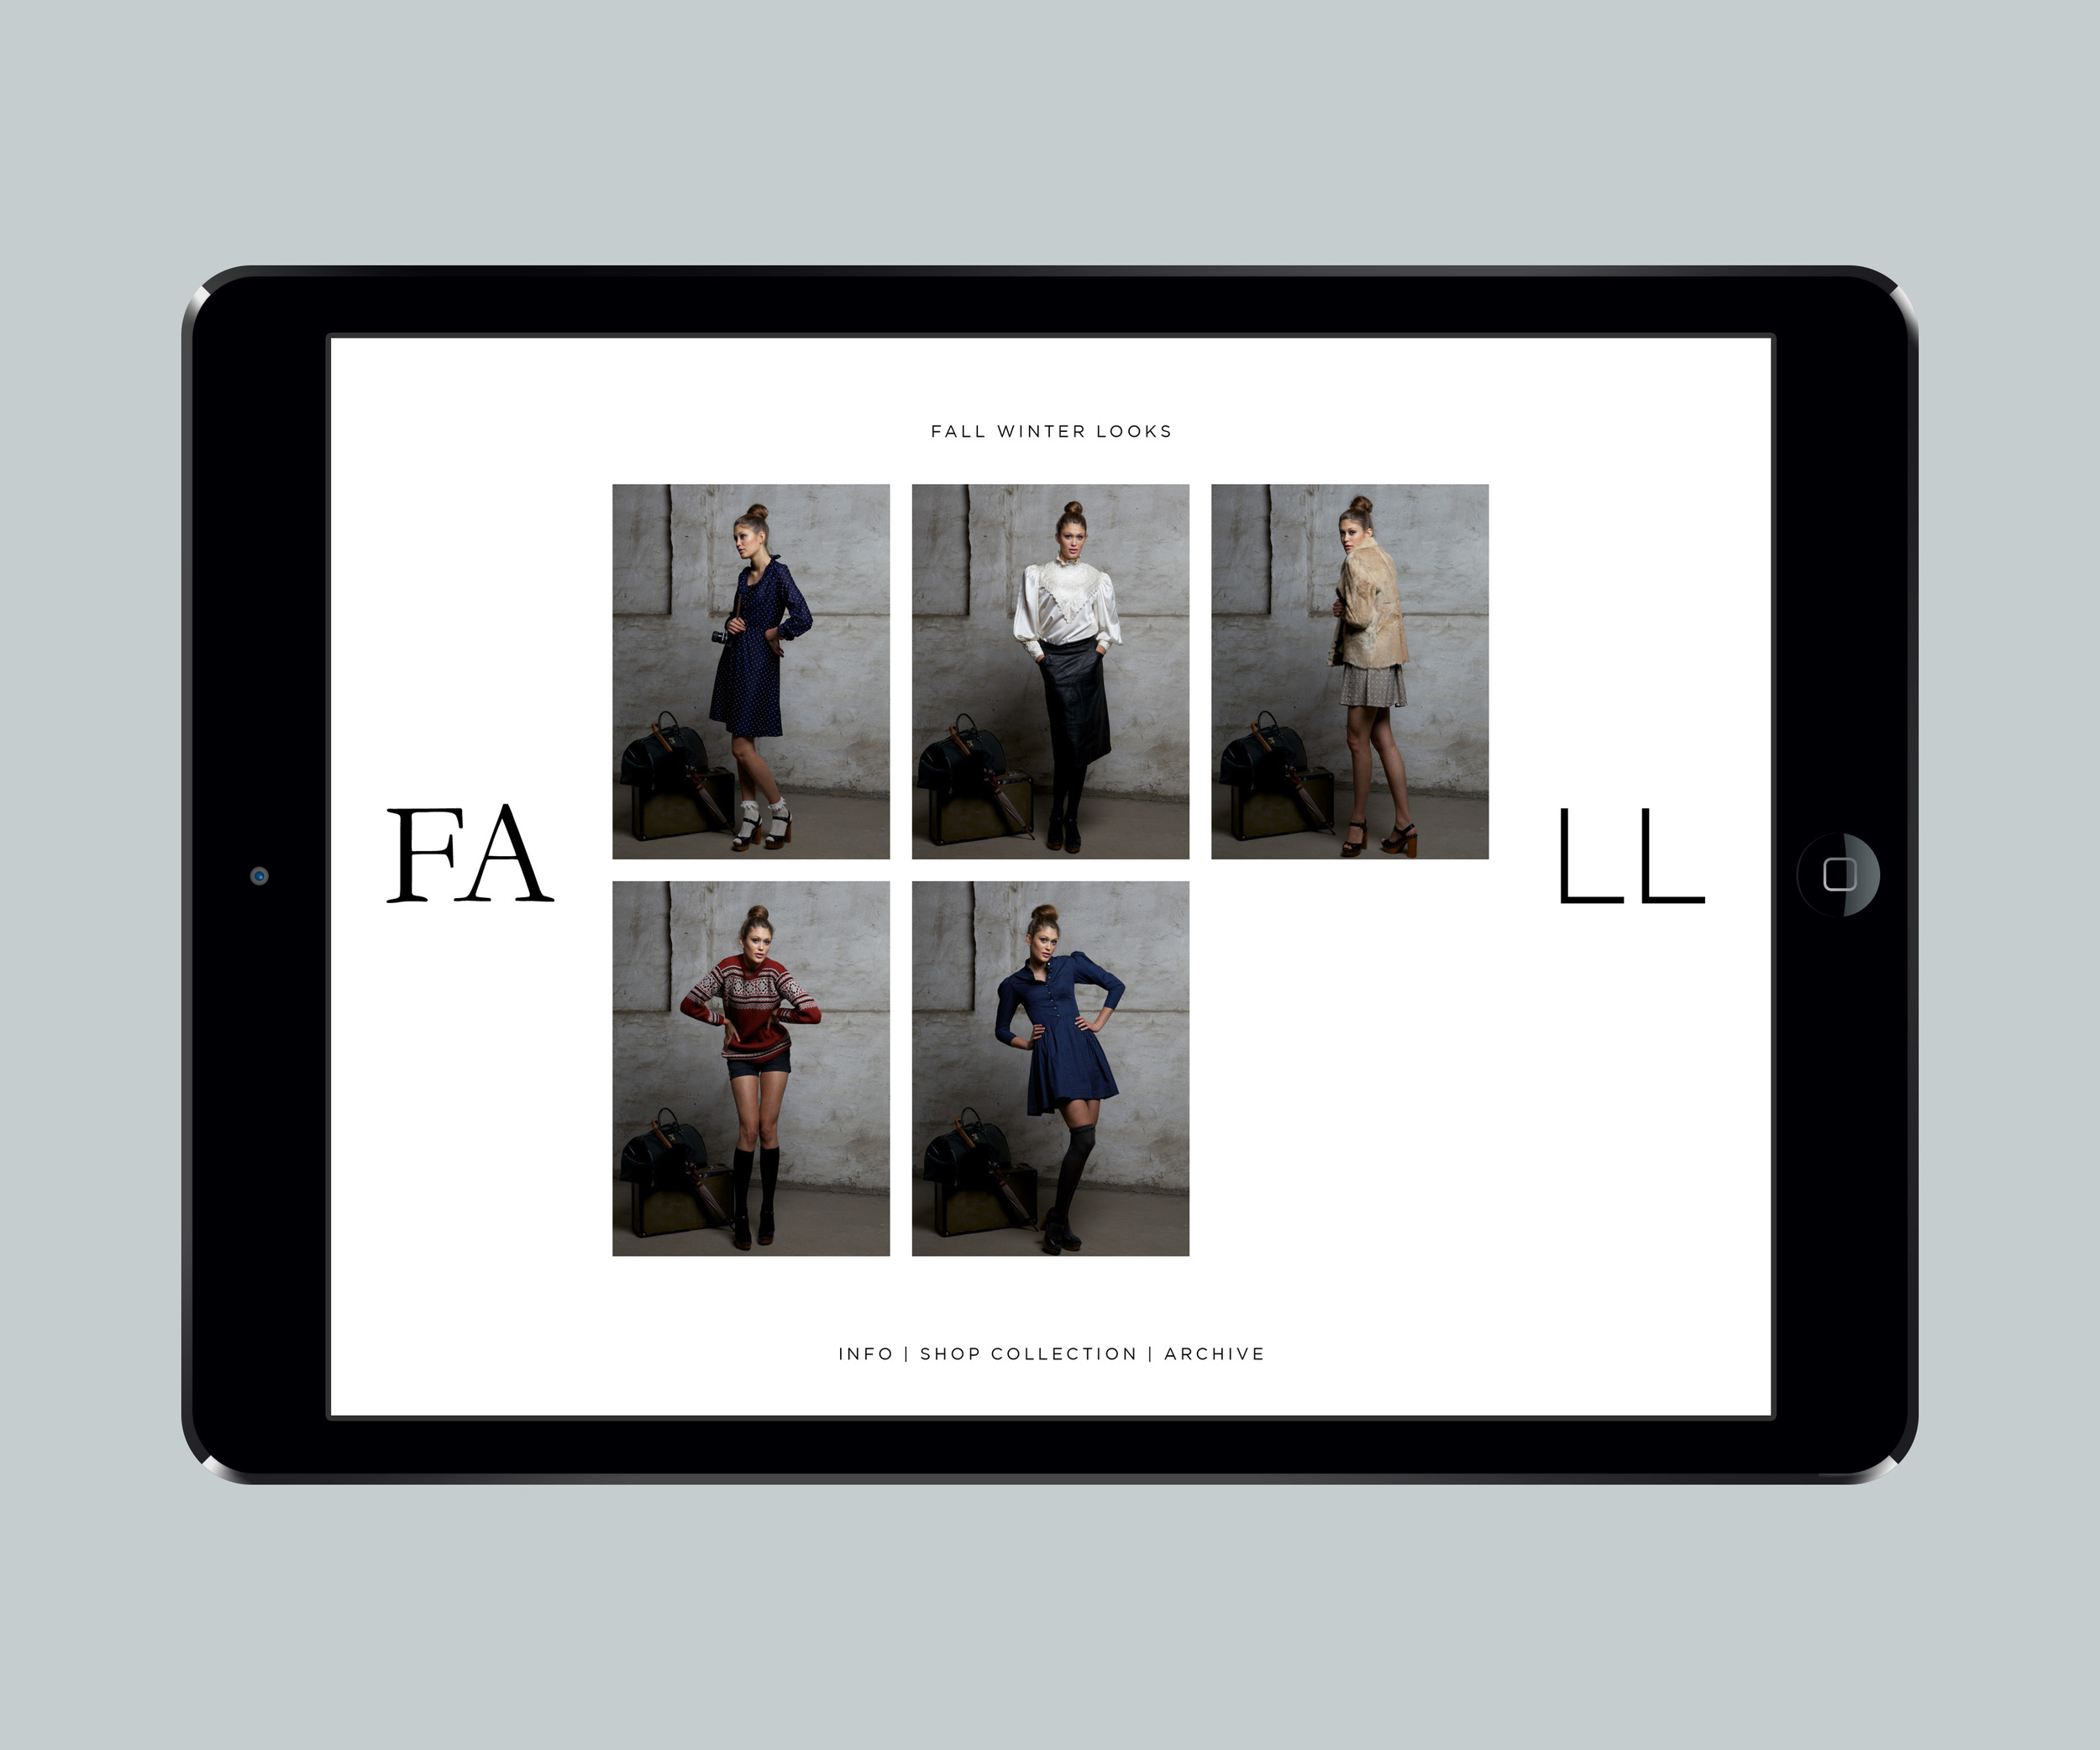 barn-lookbook-overview-03.jpg